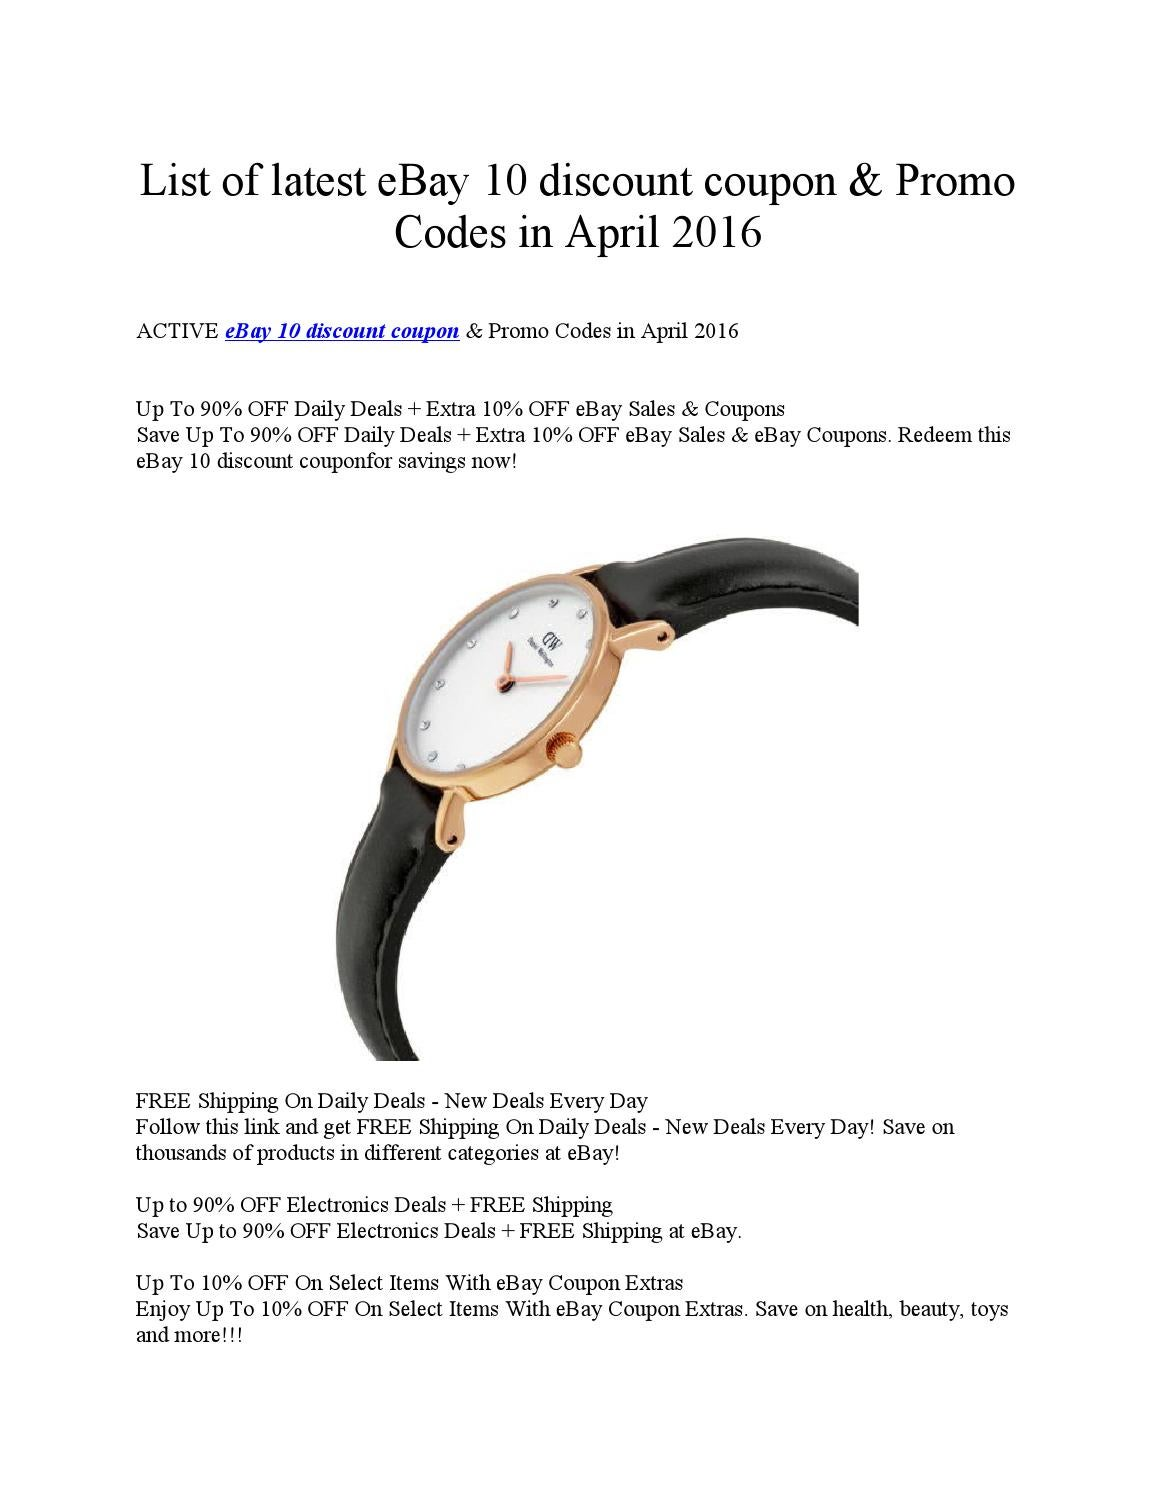 List Of Latest Ebay 10 Discount Coupon Promo Codes In April 2016 By Emma Wat Son Issuu